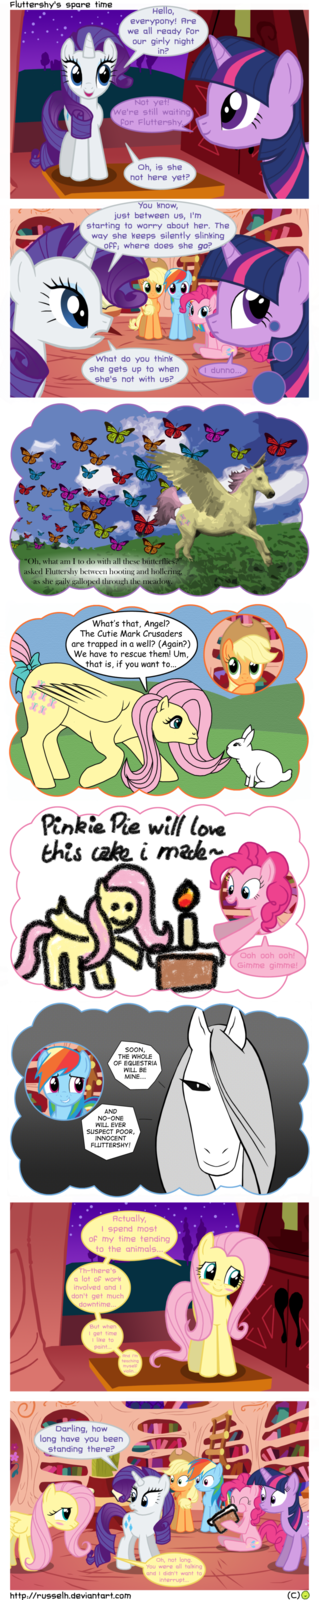 fluttershy_s_spare_time_by_russelh-d4eqnx2.png